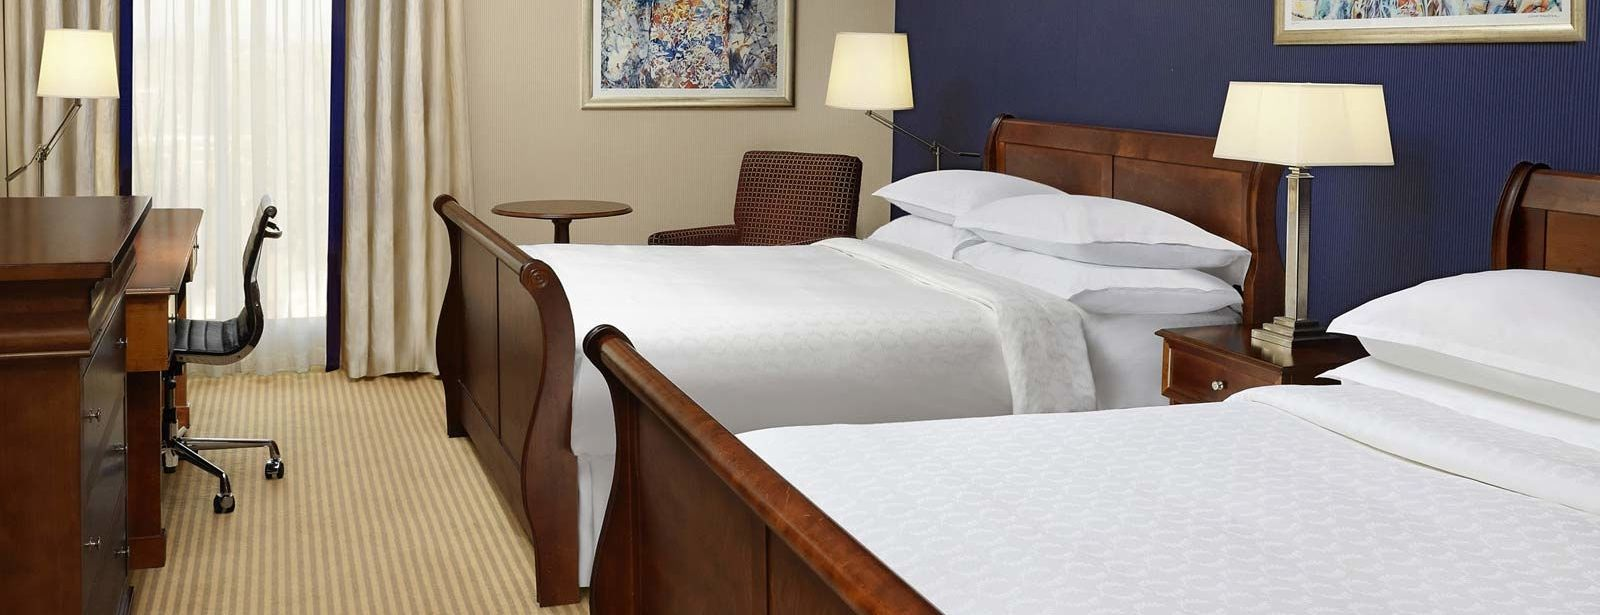 2 Double Beds in the Family Rooms at Sheraton Skyline Heathrow